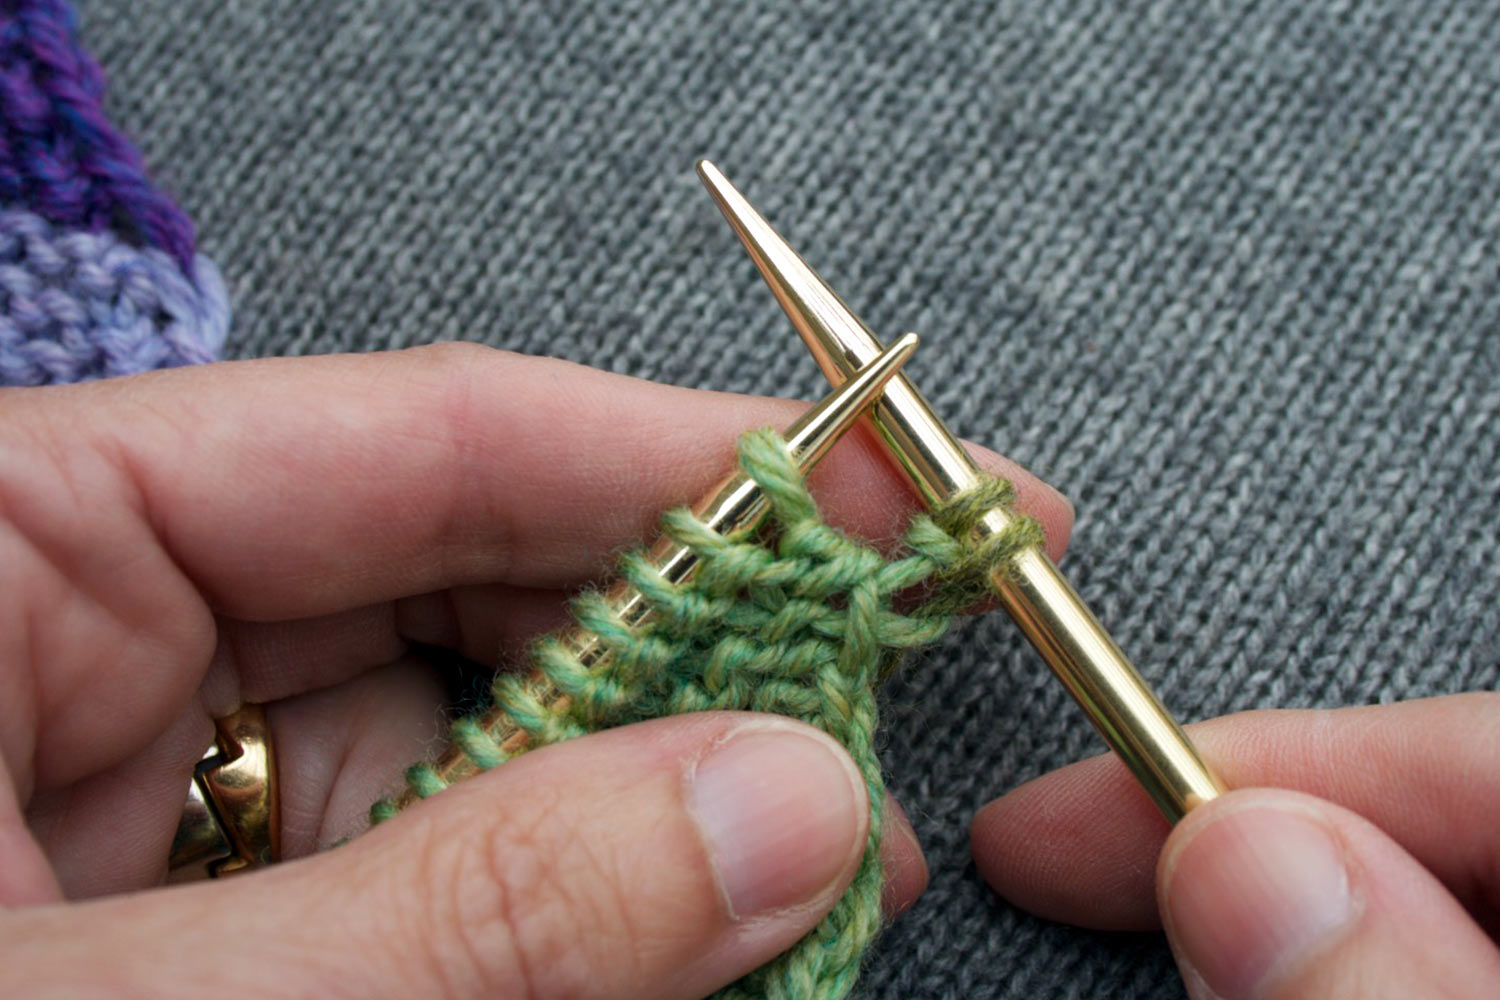 Two stitches on right needle showing the completed knit into the front and back (kfb) stitch.